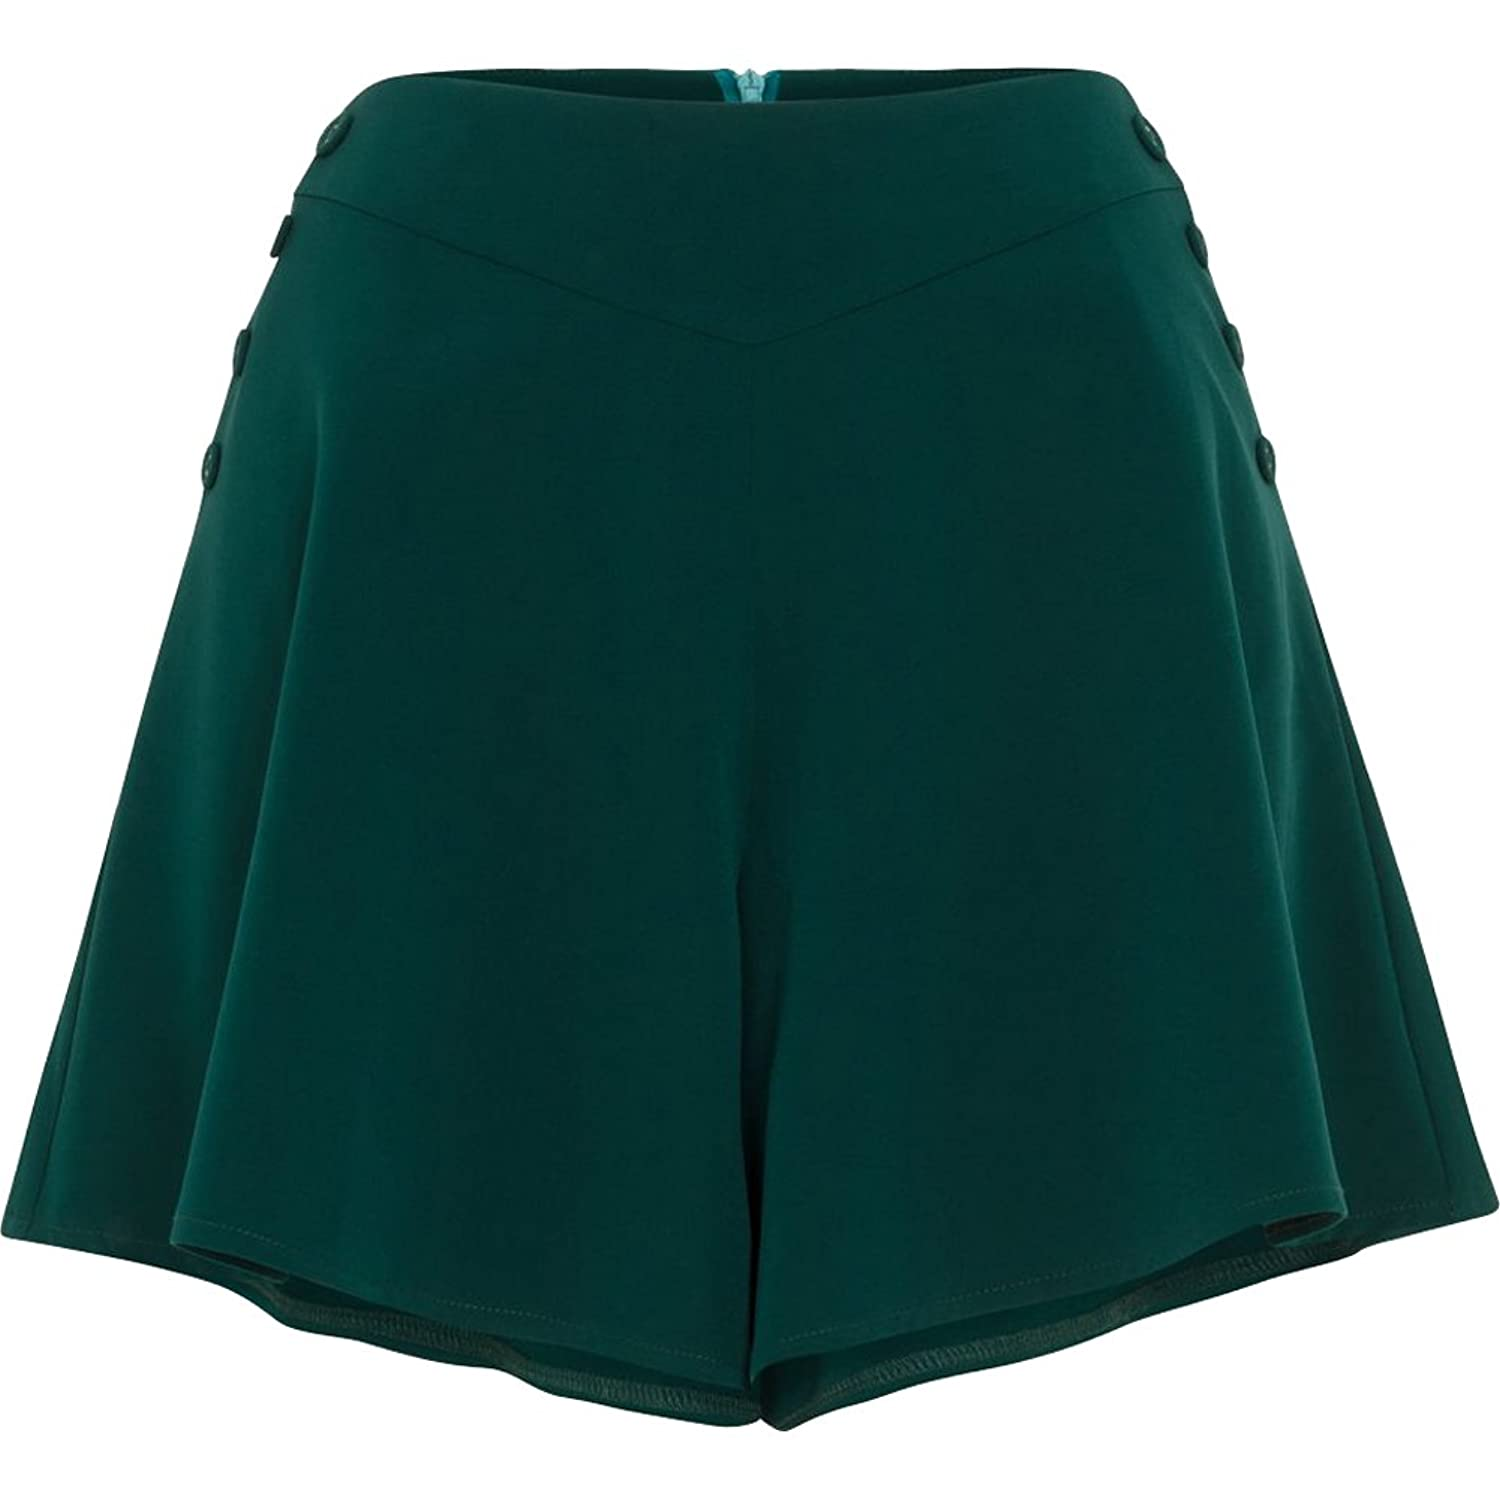 Vintage Shorts, Culottes,  Capris History Womens Voodoo Vixen MIRA Flare Shorts Green $42.99 AT vintagedancer.com